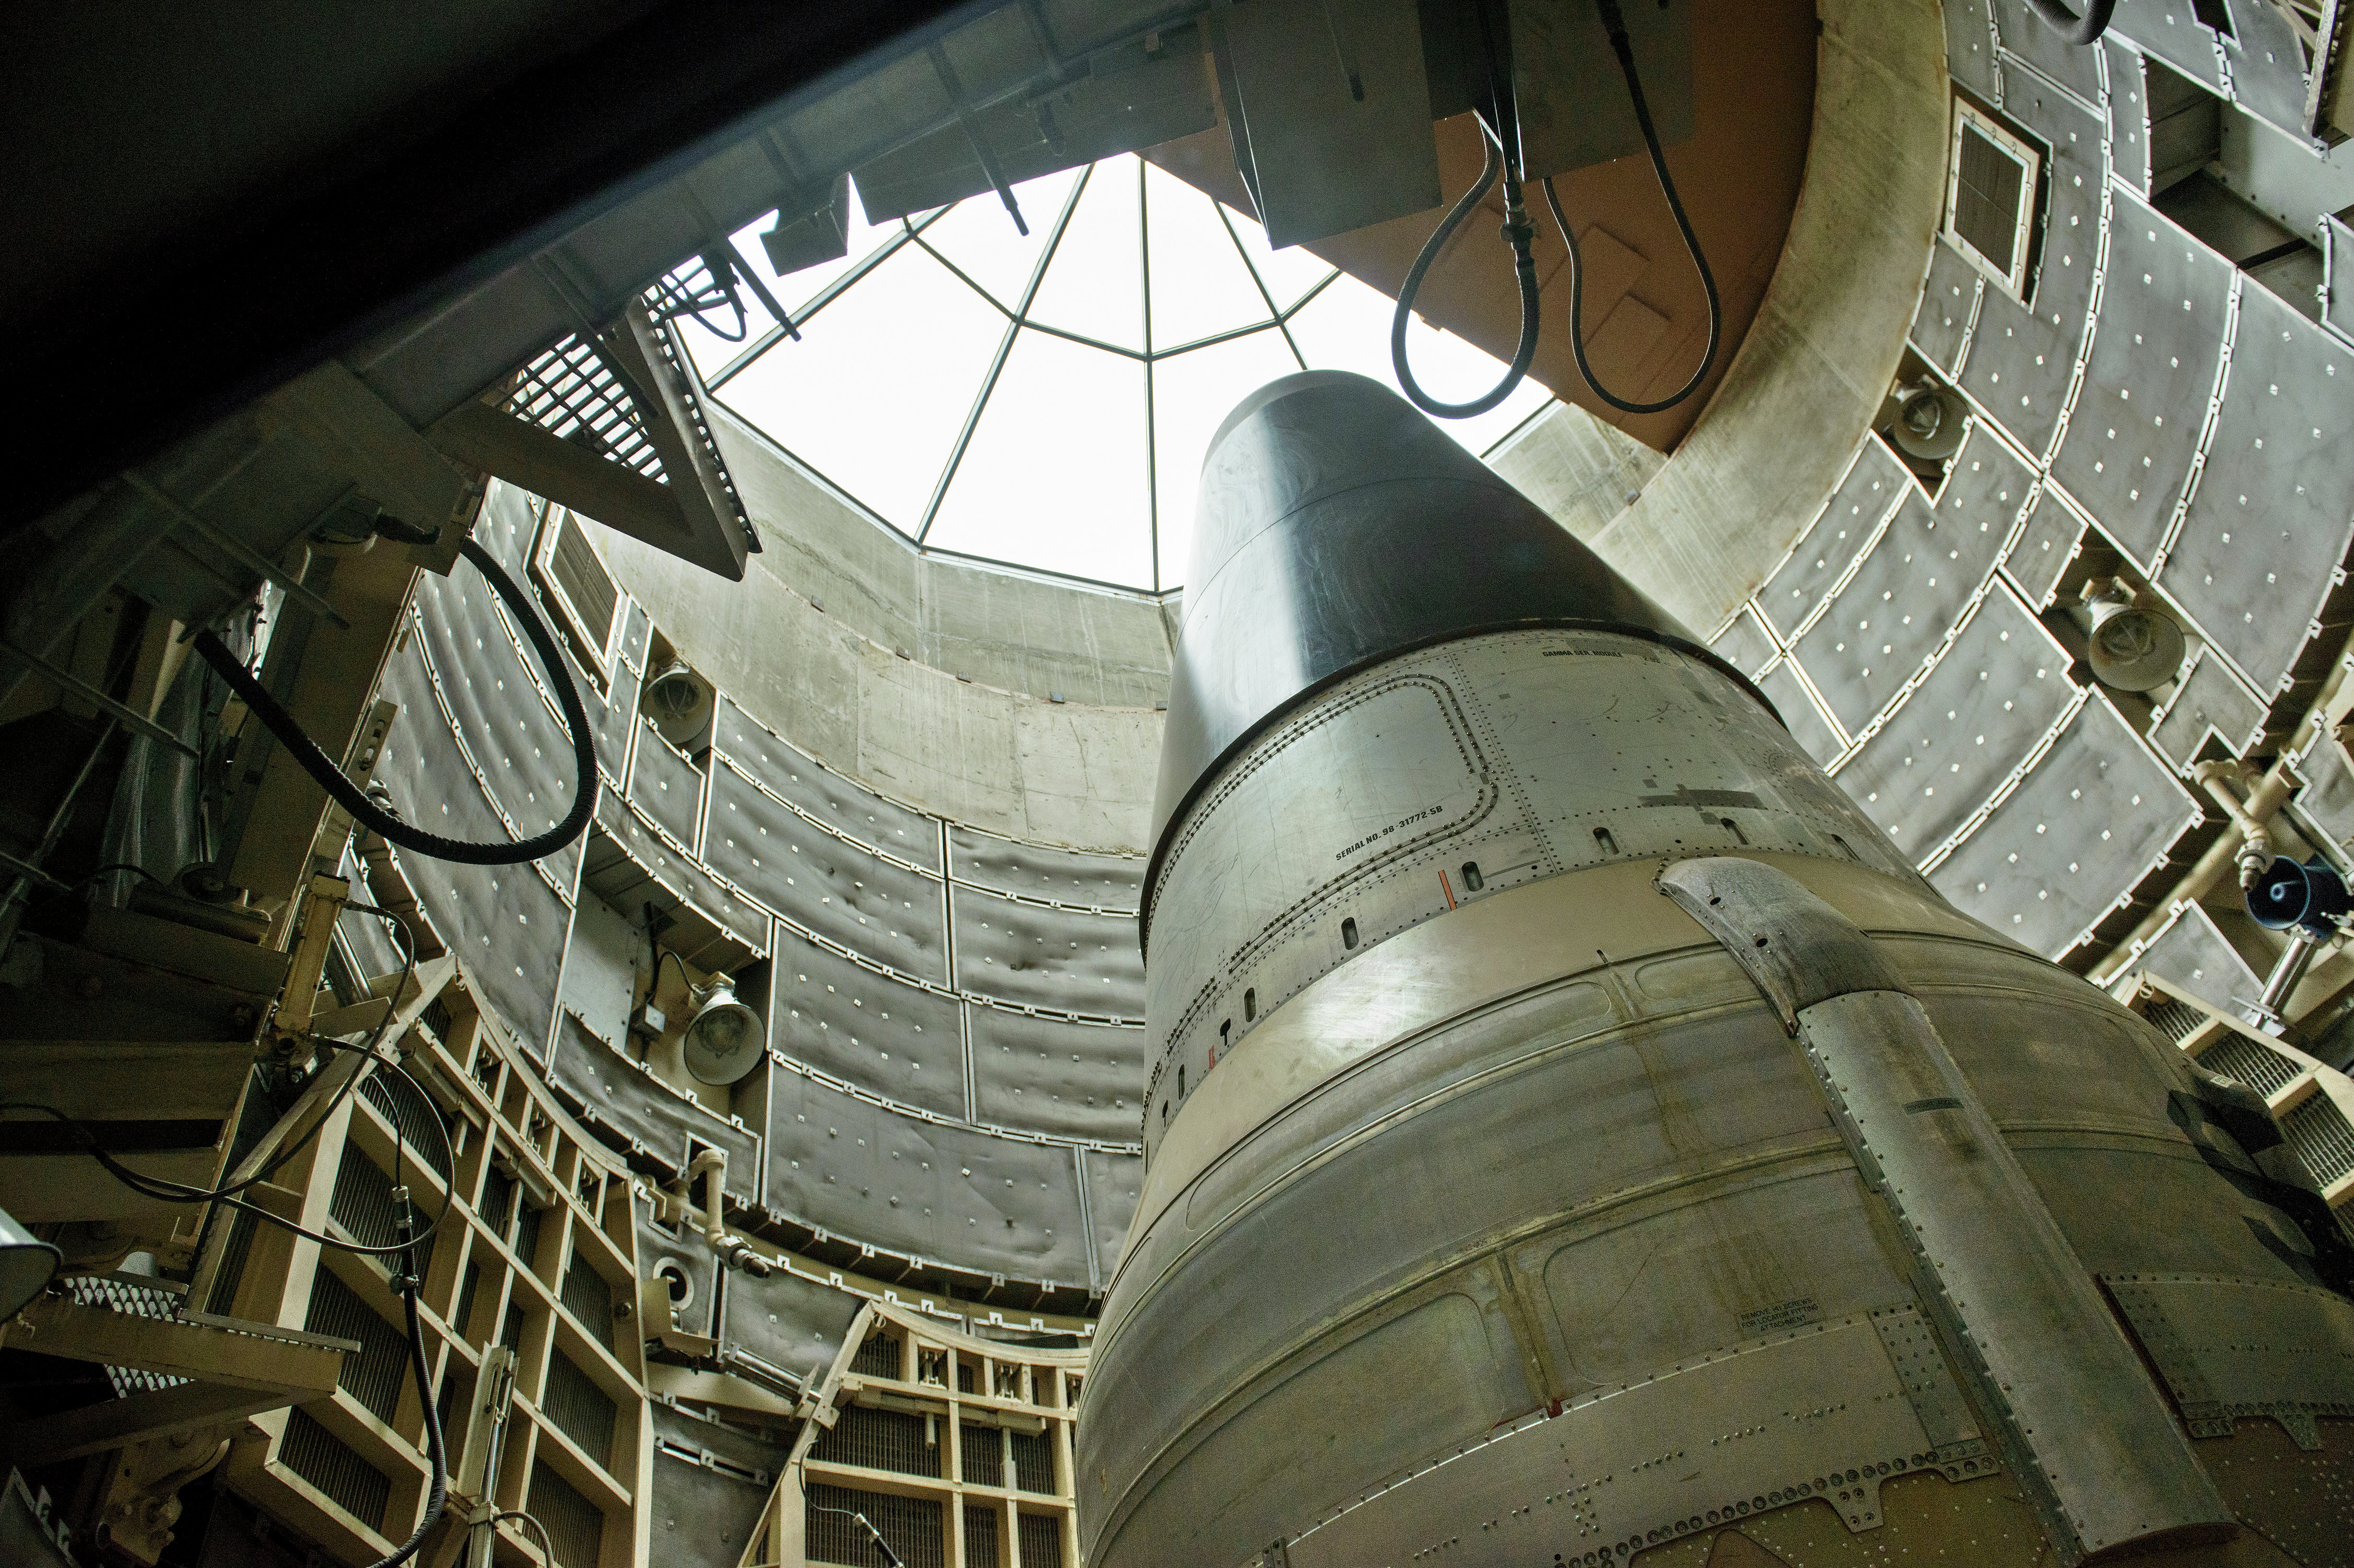 A deactivated Titan II nuclear ICMB is seen in a silo at the Titan Missile Museum on May 12, 2015 in Green Valley, Arizona. The museum is located in a preserved Titan II ICBM launch complex and is devoted to educating visitors about the Cold War and the Titan II missile's contribution as a nuclear deterrent.